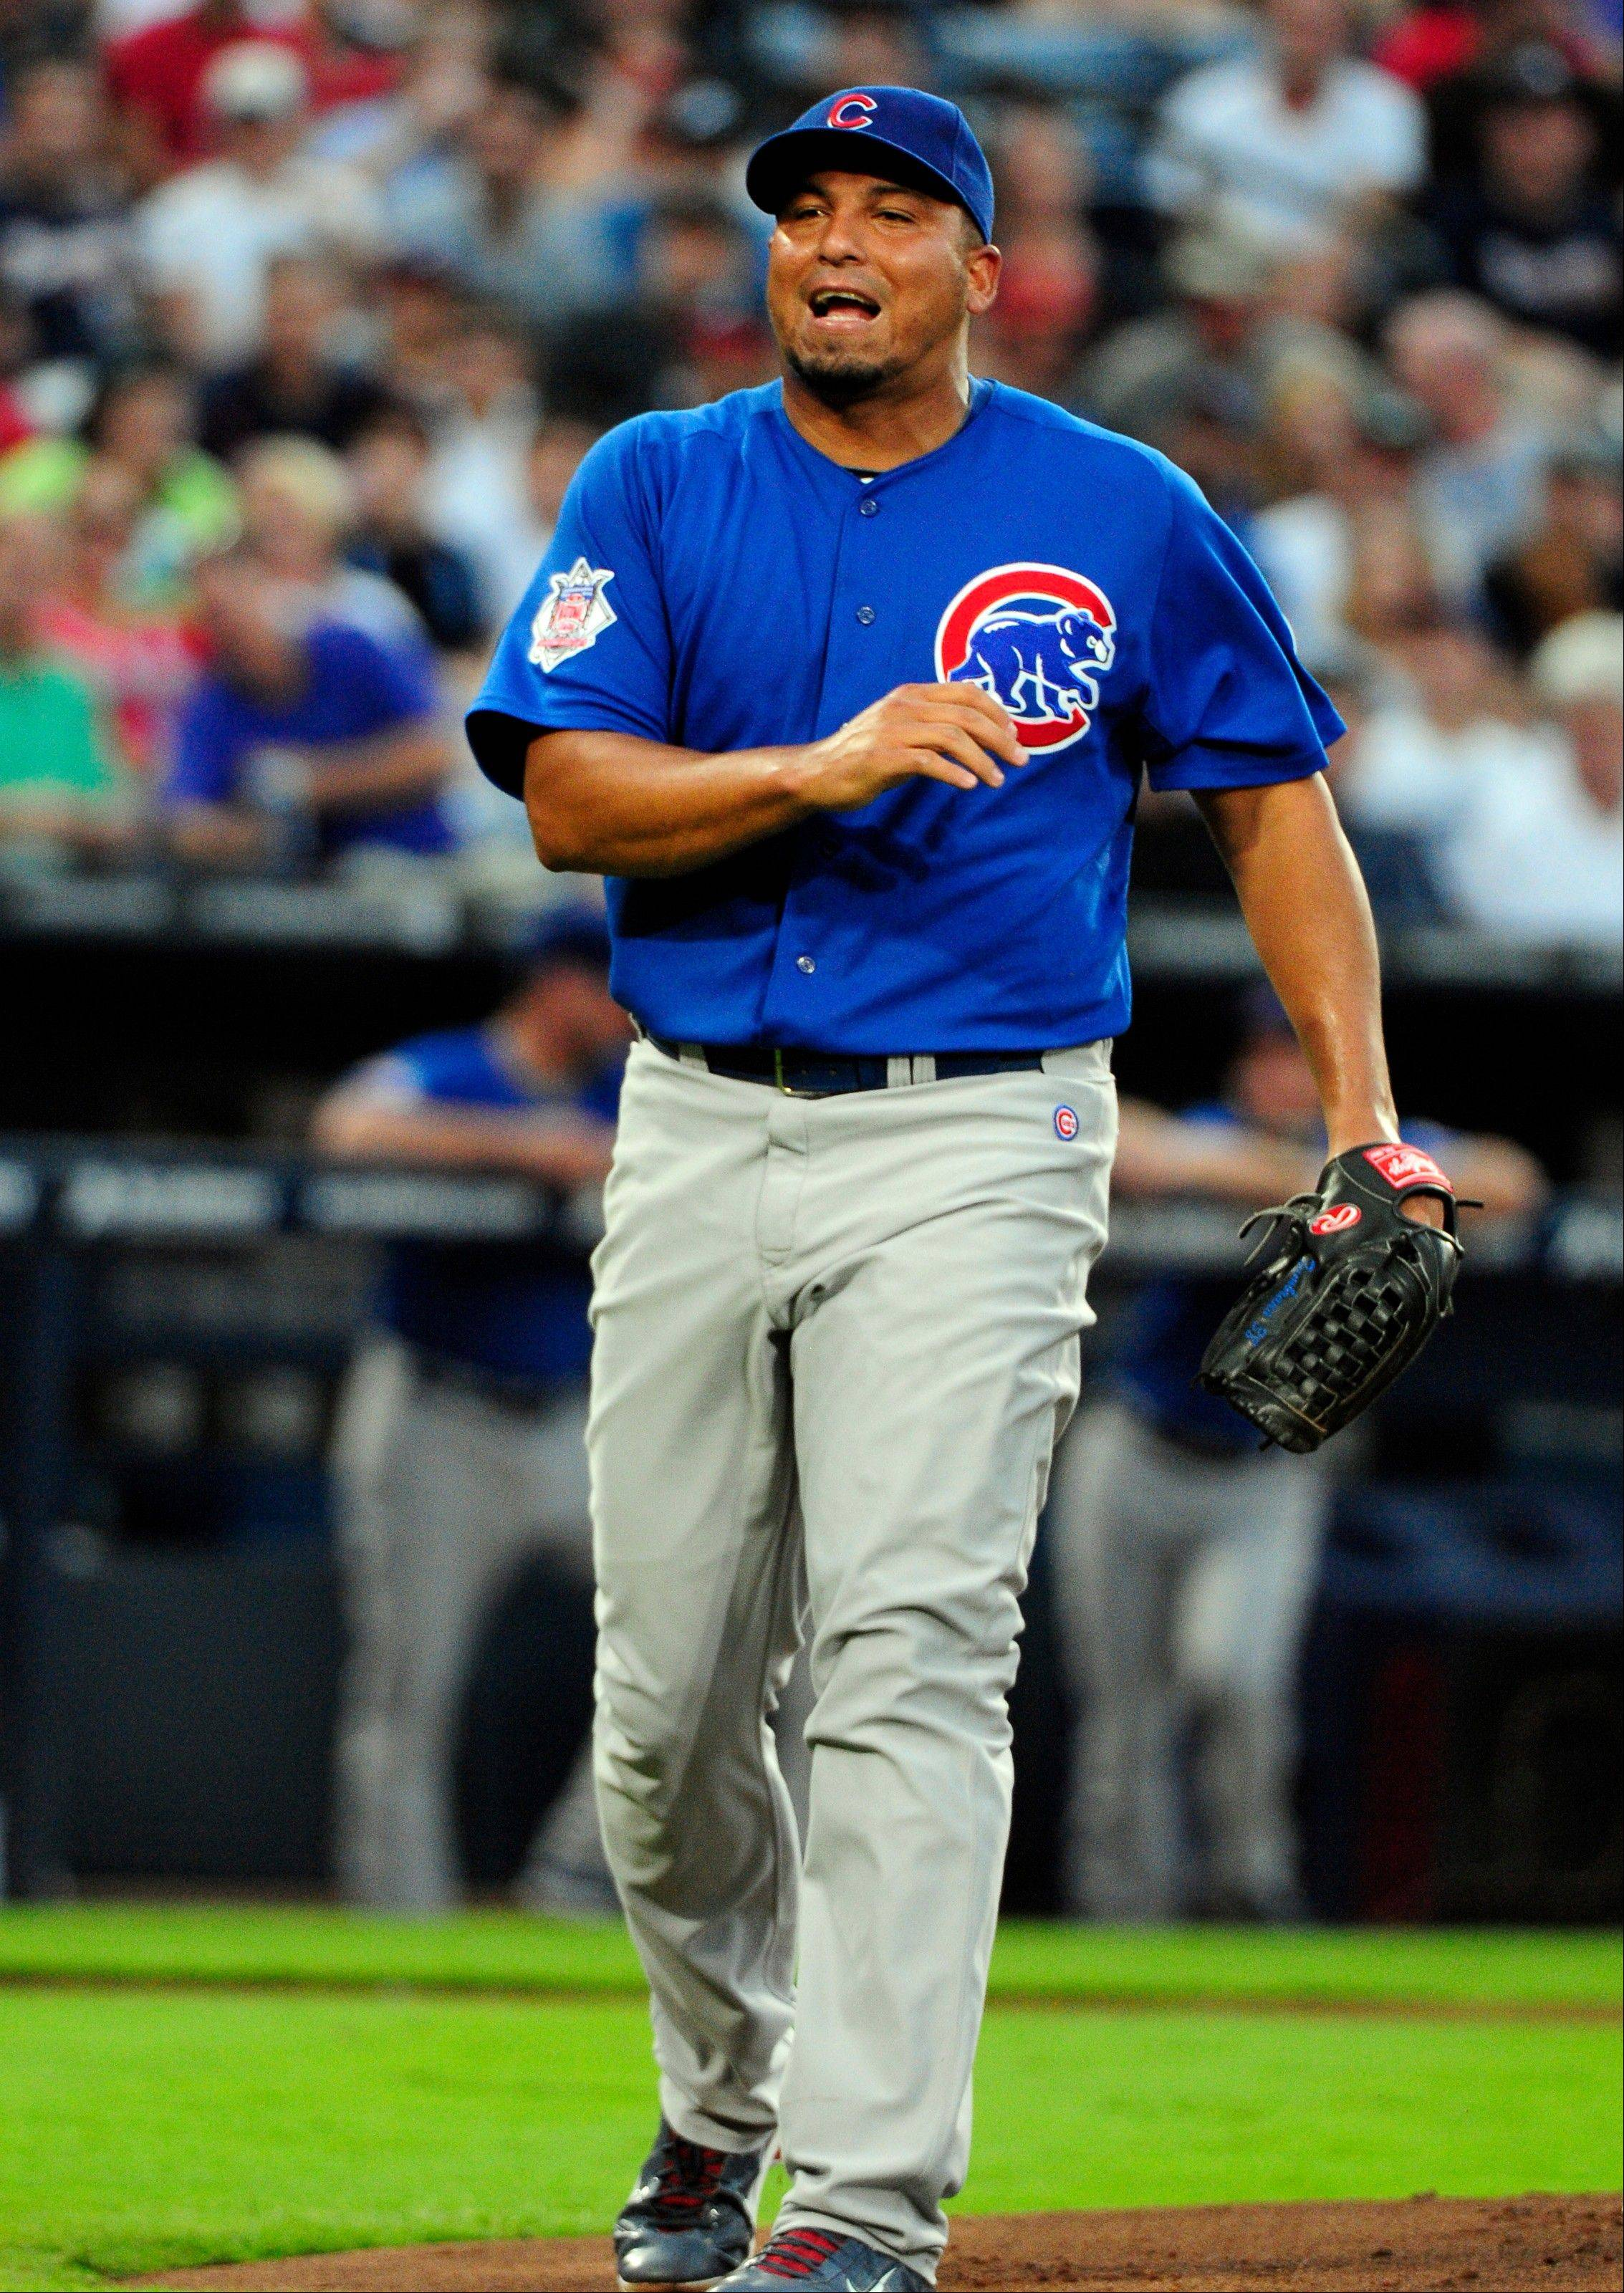 This game against Atlanta on Aug. 12 now marks the final appearance of the season for Cubs pitcher Carlos Zambrano. Team officials said Friday that Zambrano won't be rejoining the club when his 30-day suspension ends on Sunday, and he will stay home the rest of the season.